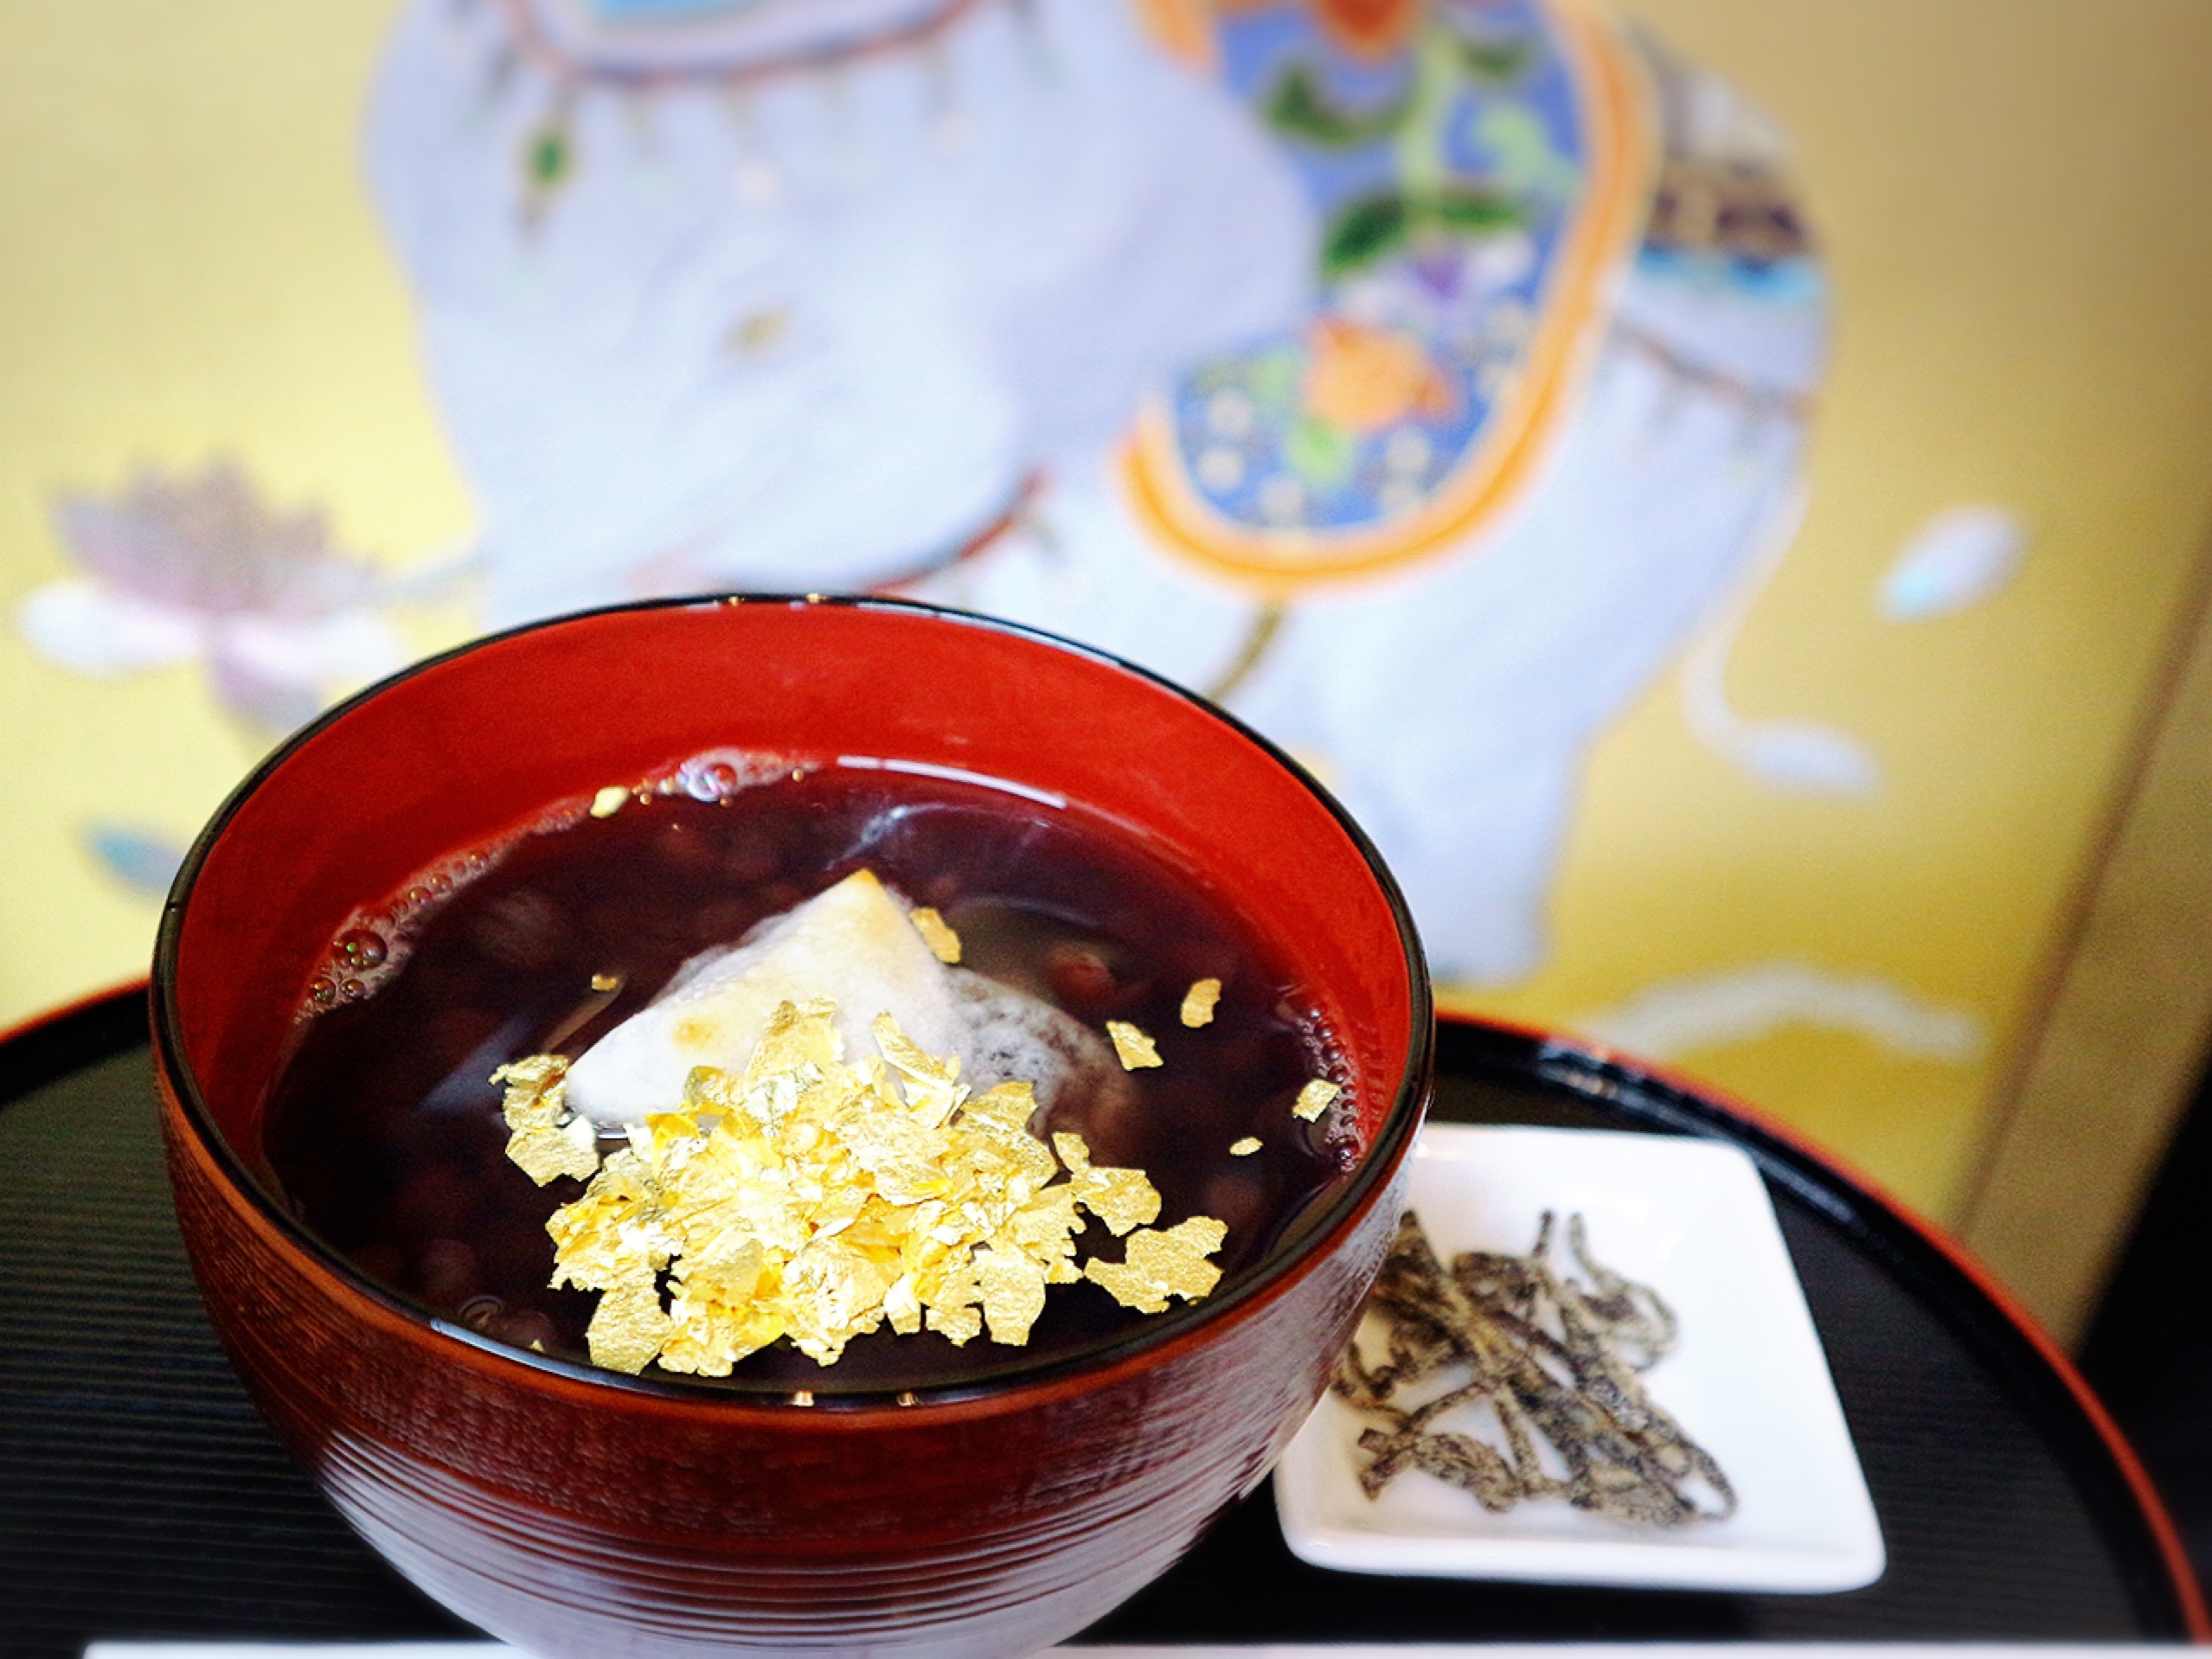 Red Azuki bean soup with small Rokujo rice cakes and golden leaves